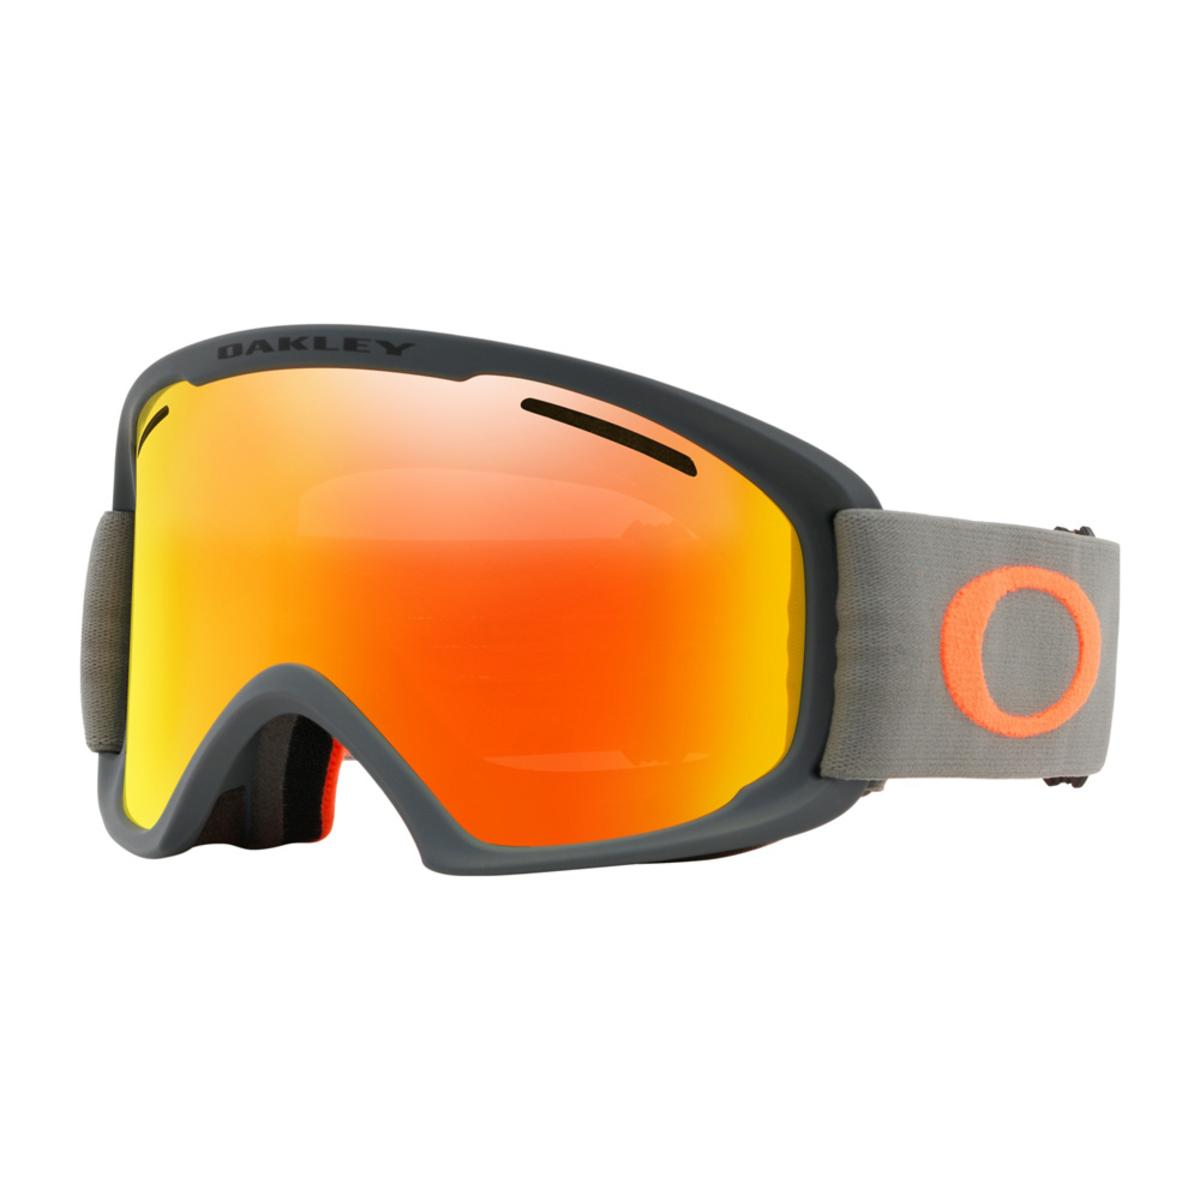 a7600515918 Oakley O Frame 2.0 XL Dark Brush Orange Snow Goggle w Fire Iridium - The  Warming Store